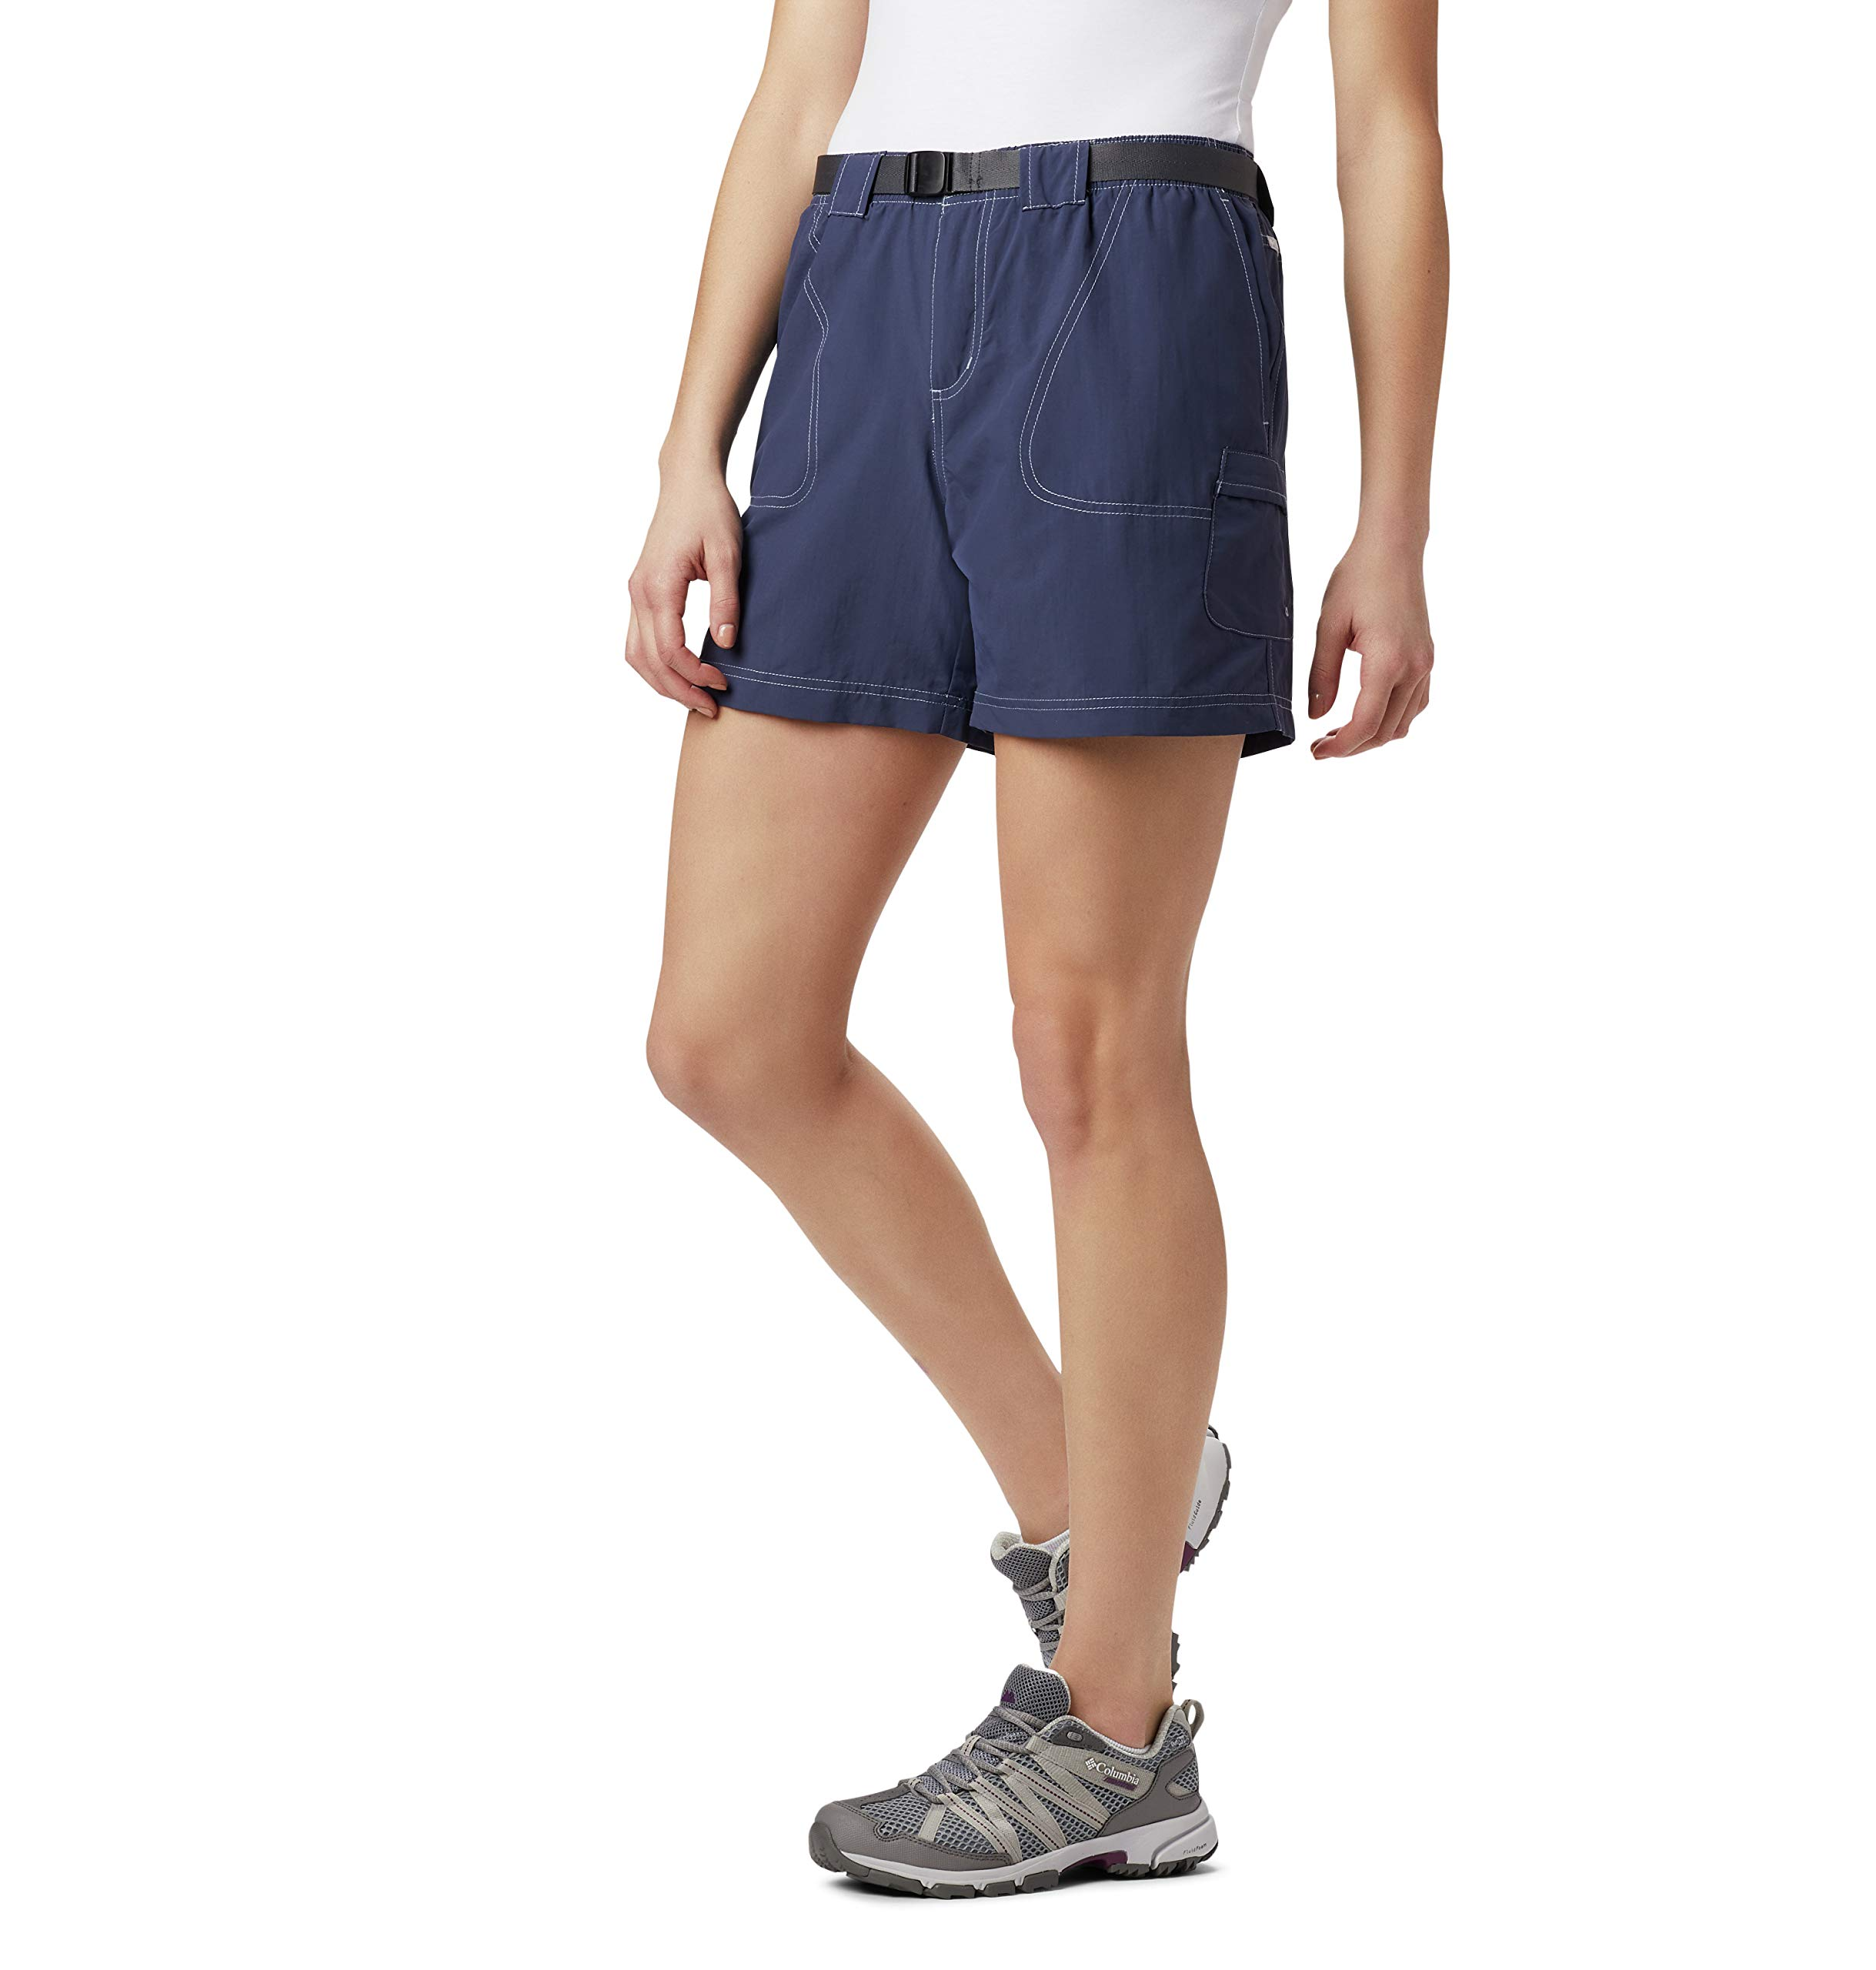 Columbia Women's Plus Size Sandy River Cargo Short, Nocturnal, 1X by Columbia